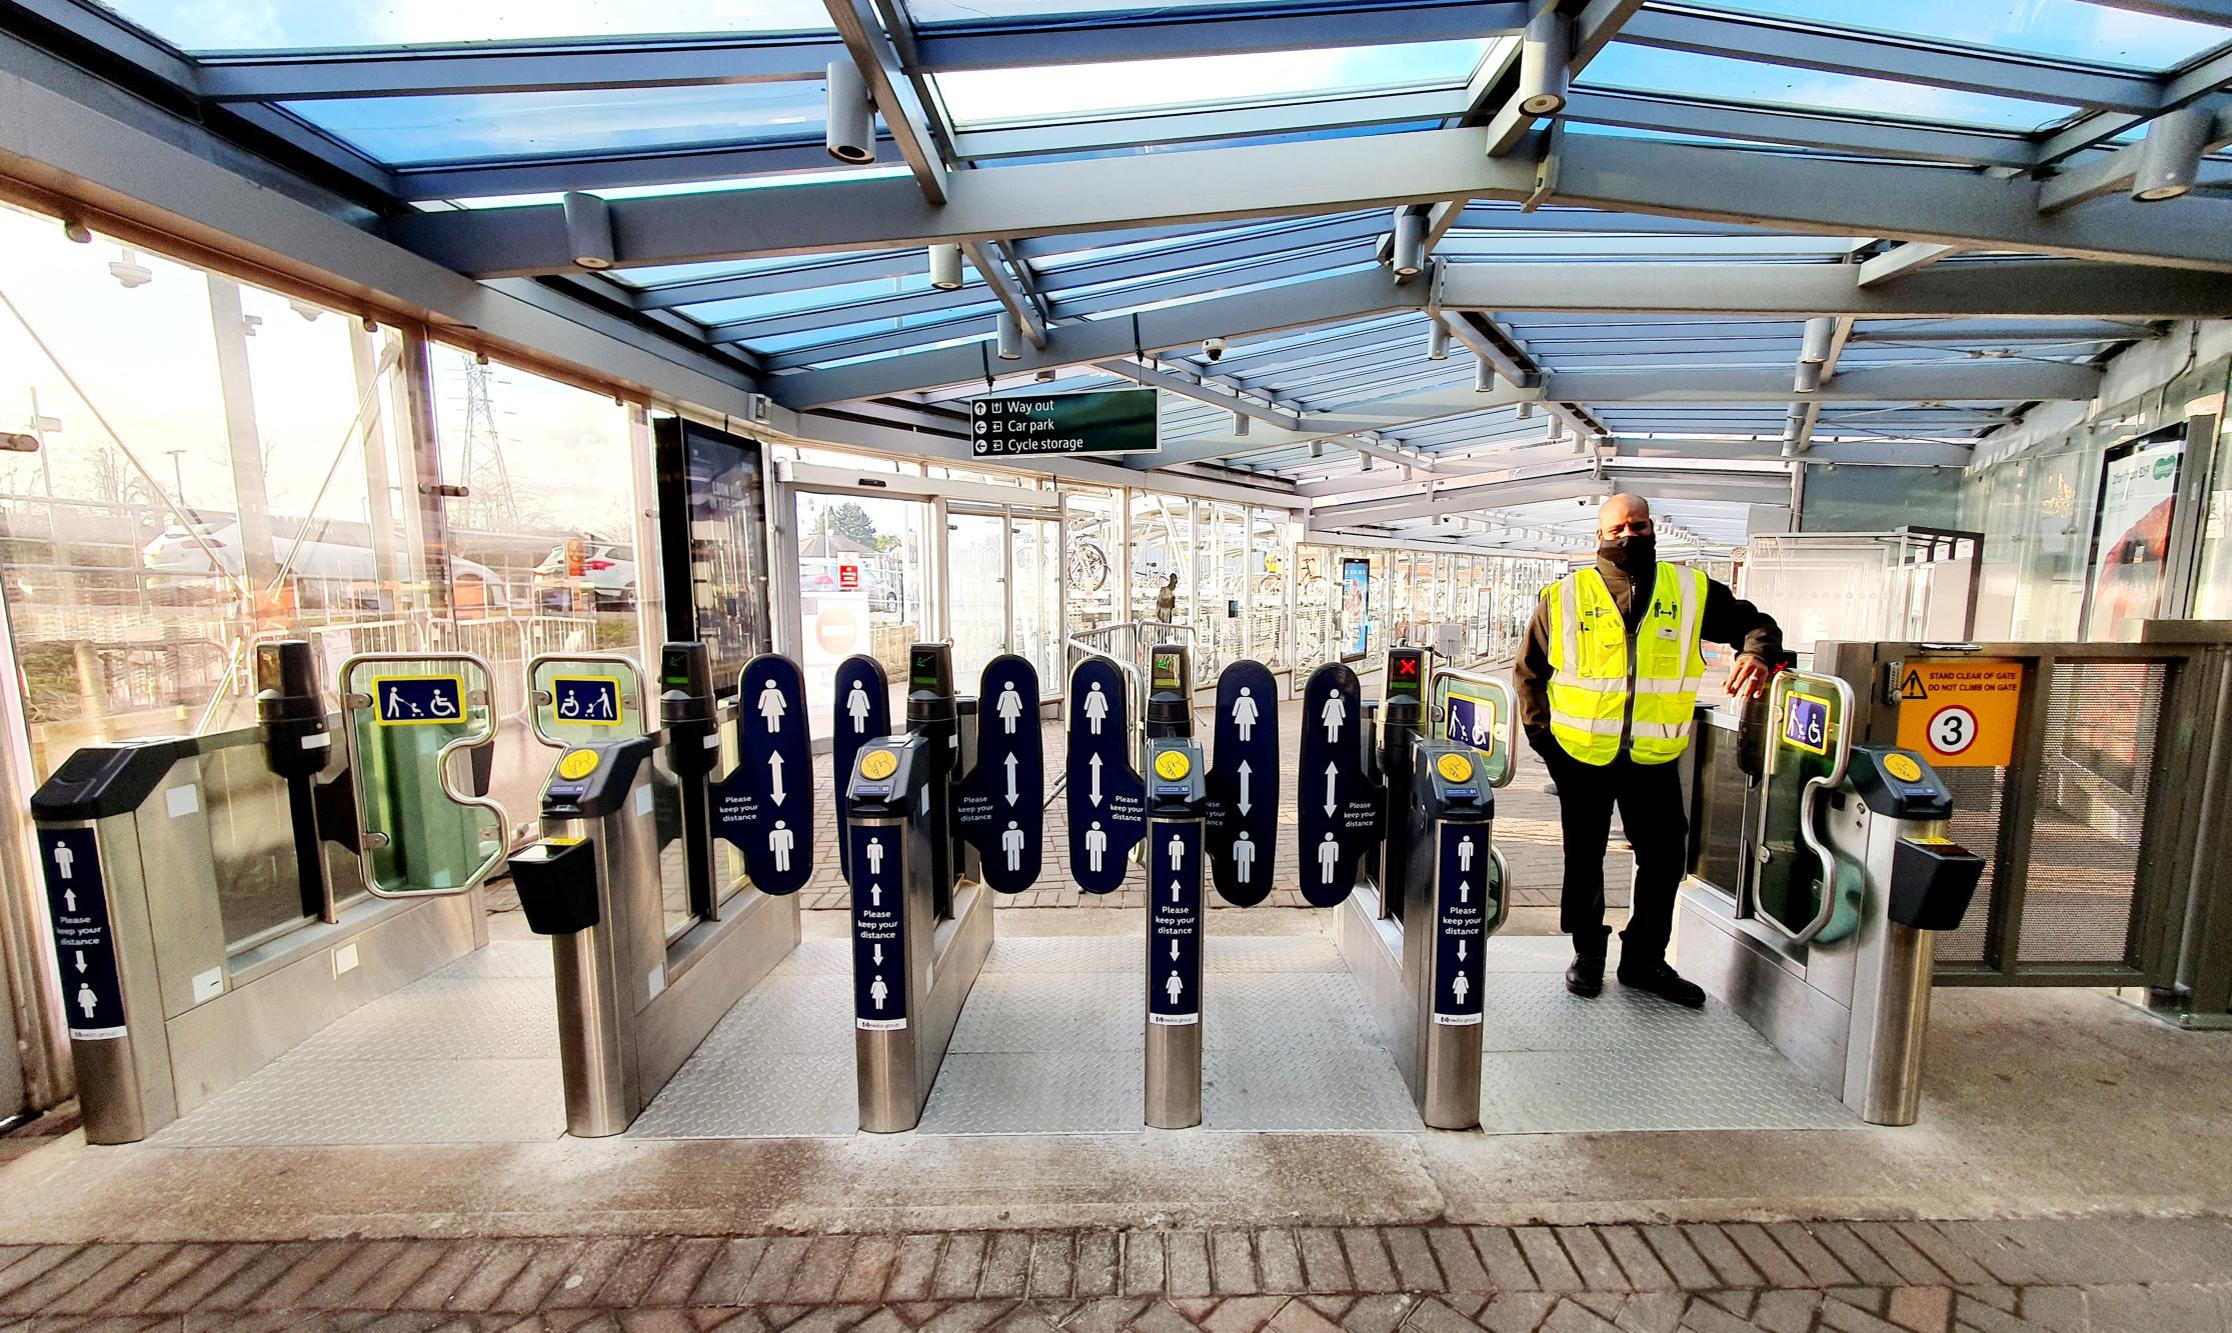 Better Accessibility - Three bridges have a wider extra door for wheelchair users and carts